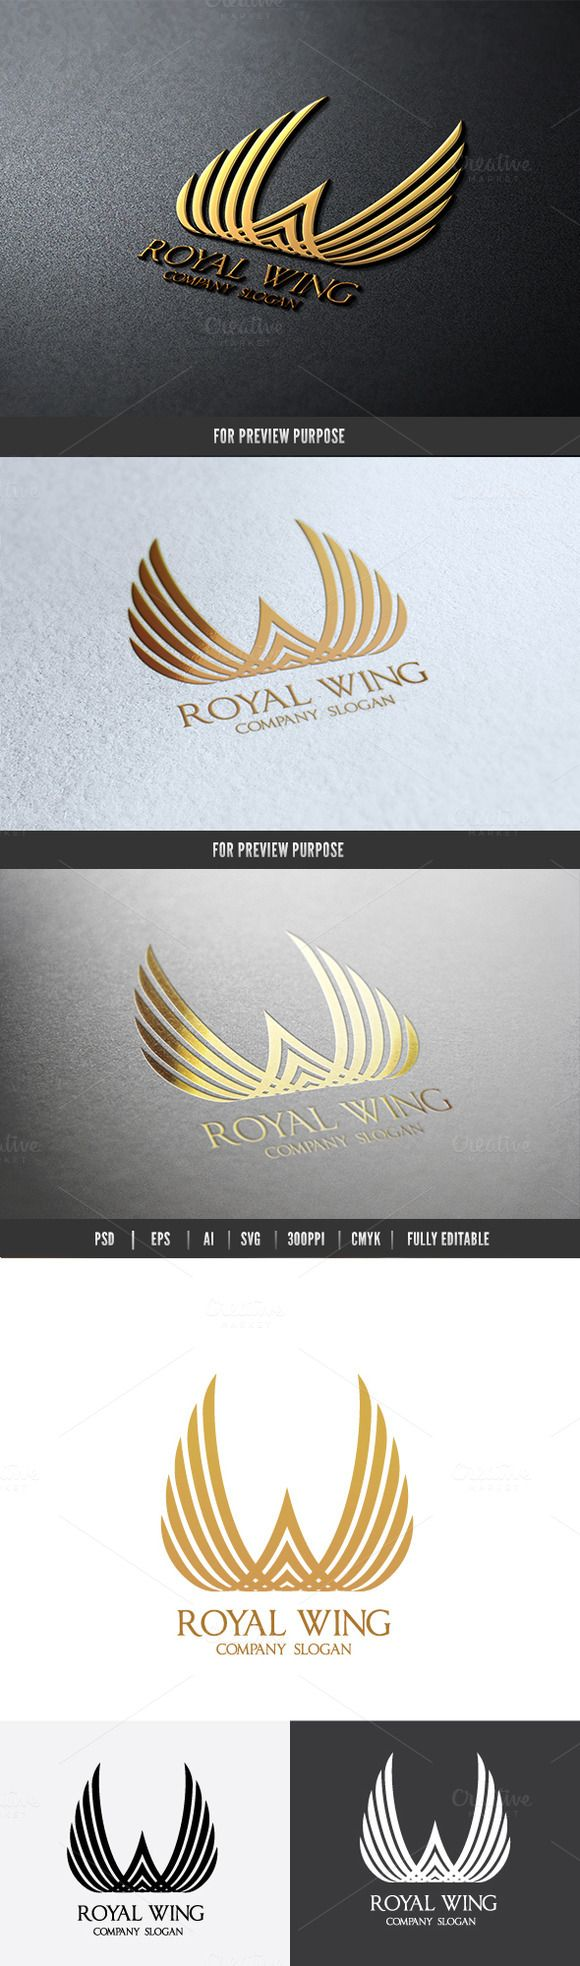 Royal Wing by Super Pig Shop on Creative Market                                                                                                                                                                                 More